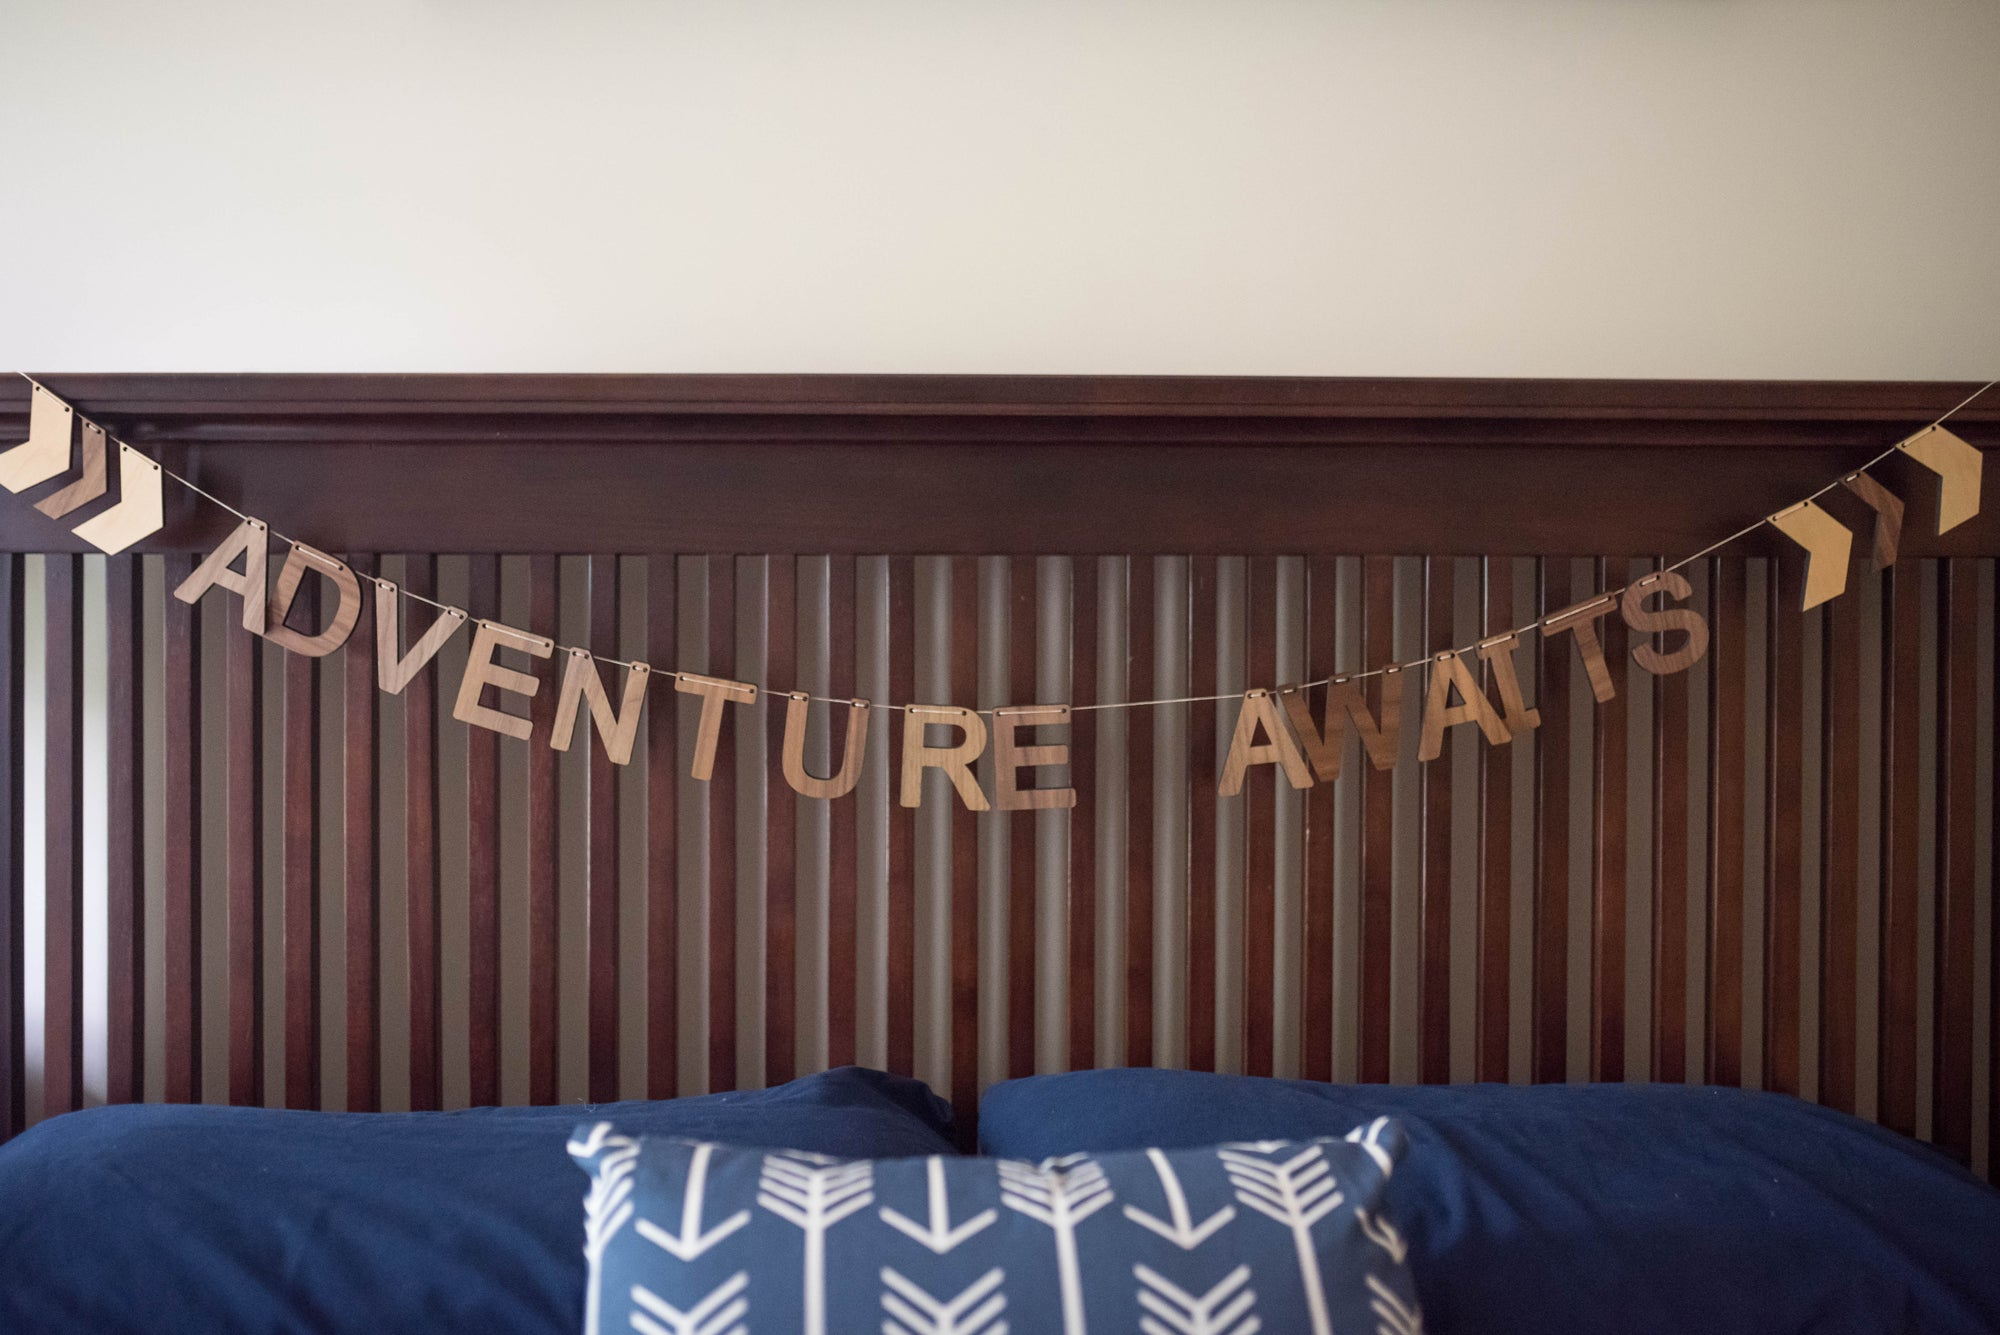 Adventure Awaits Decorative Wall Wooden Bunting from Smiling Tree Toys